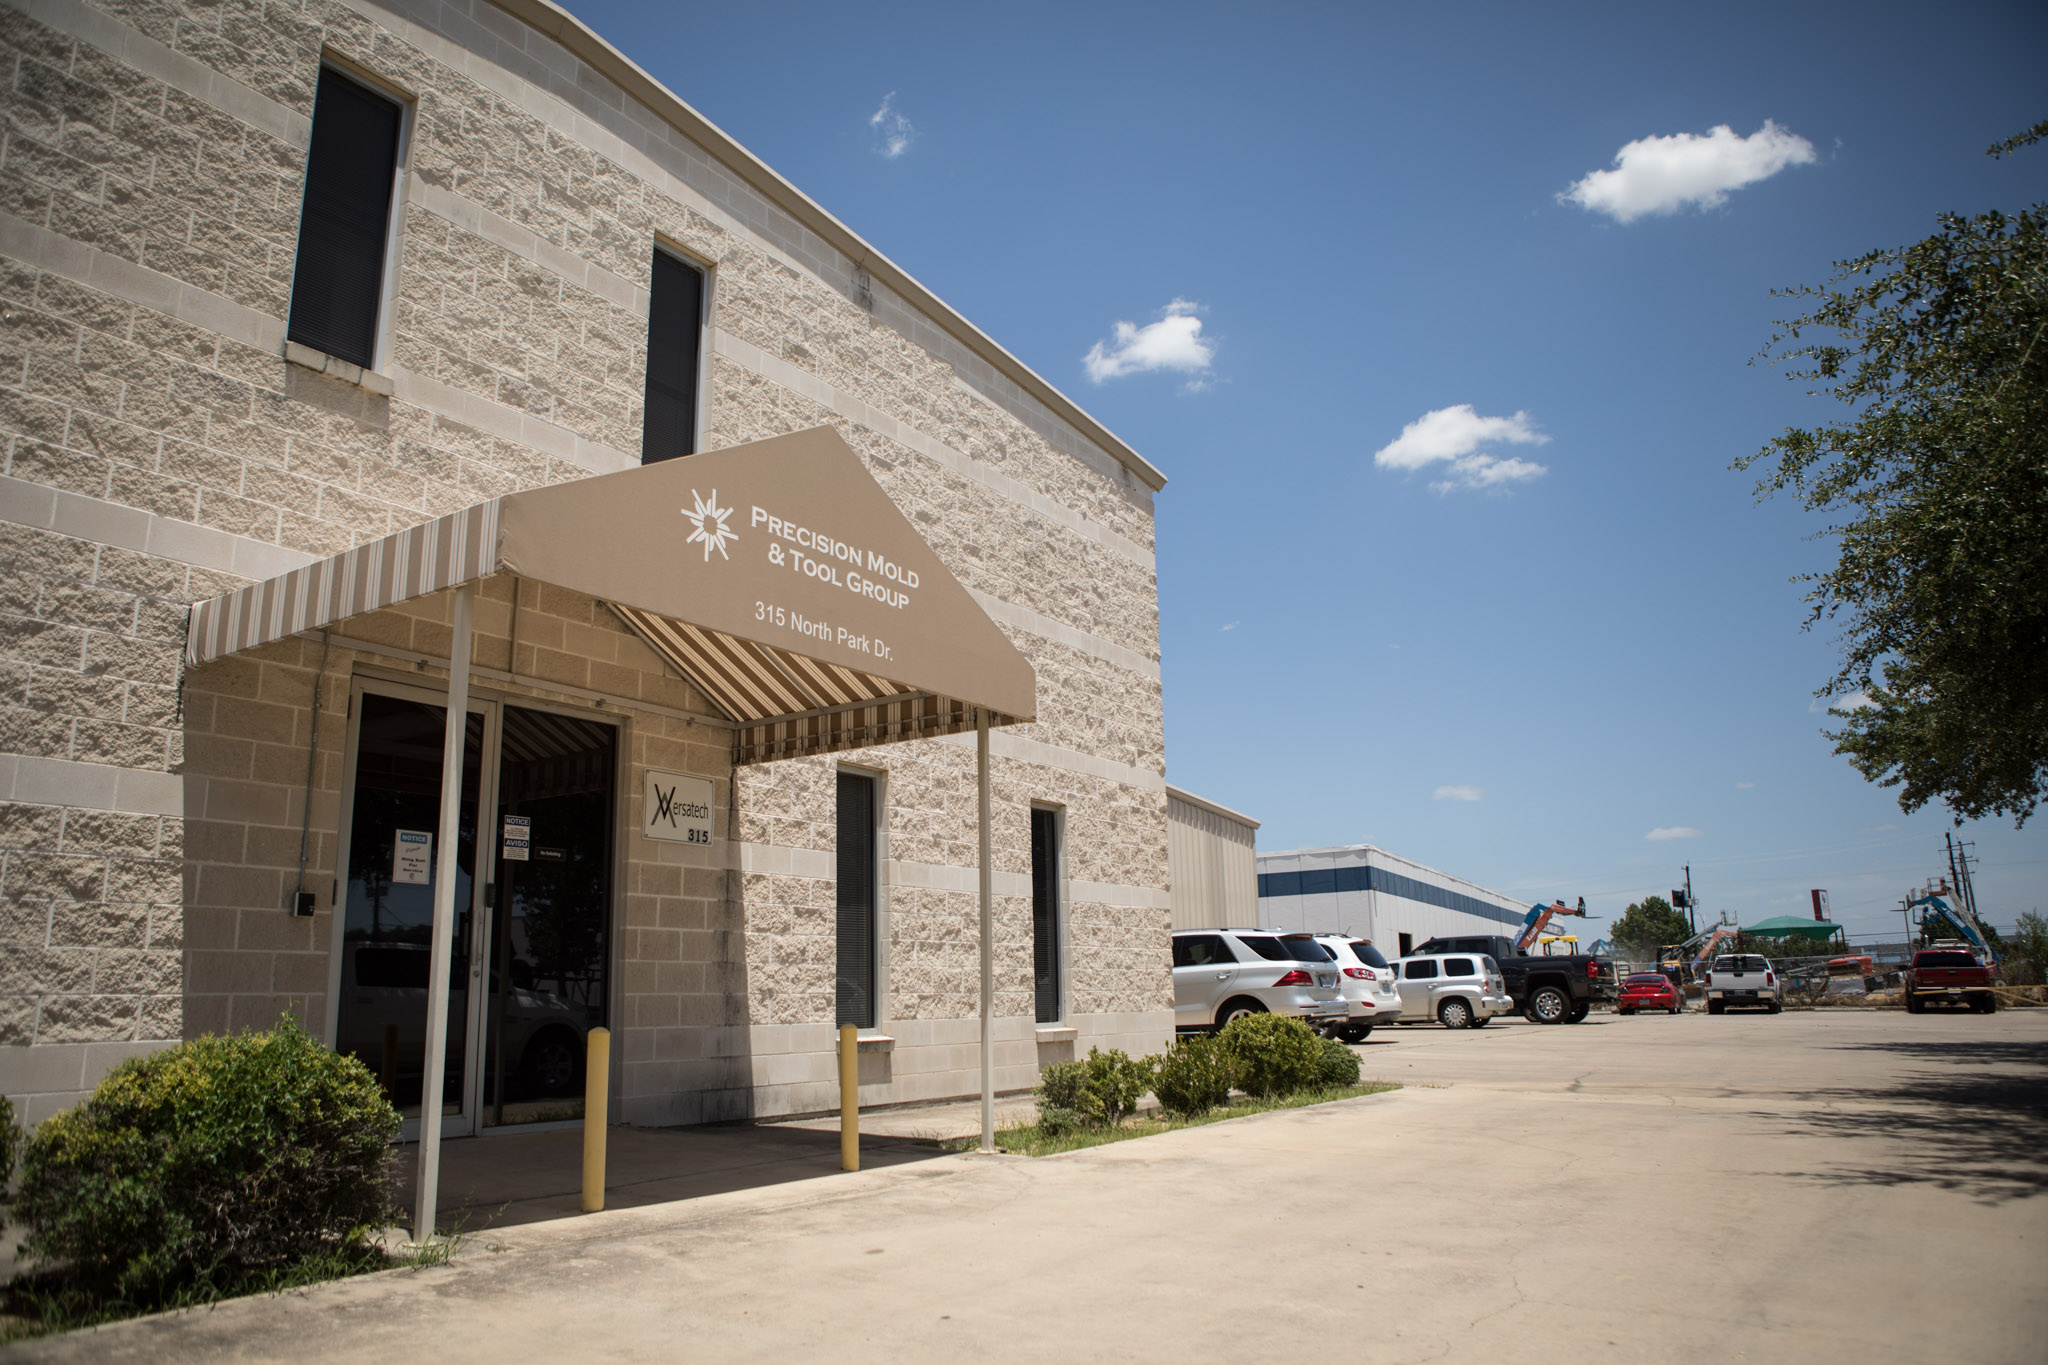 Precision Mold & Tool Group is located at 315 N Park Dr.